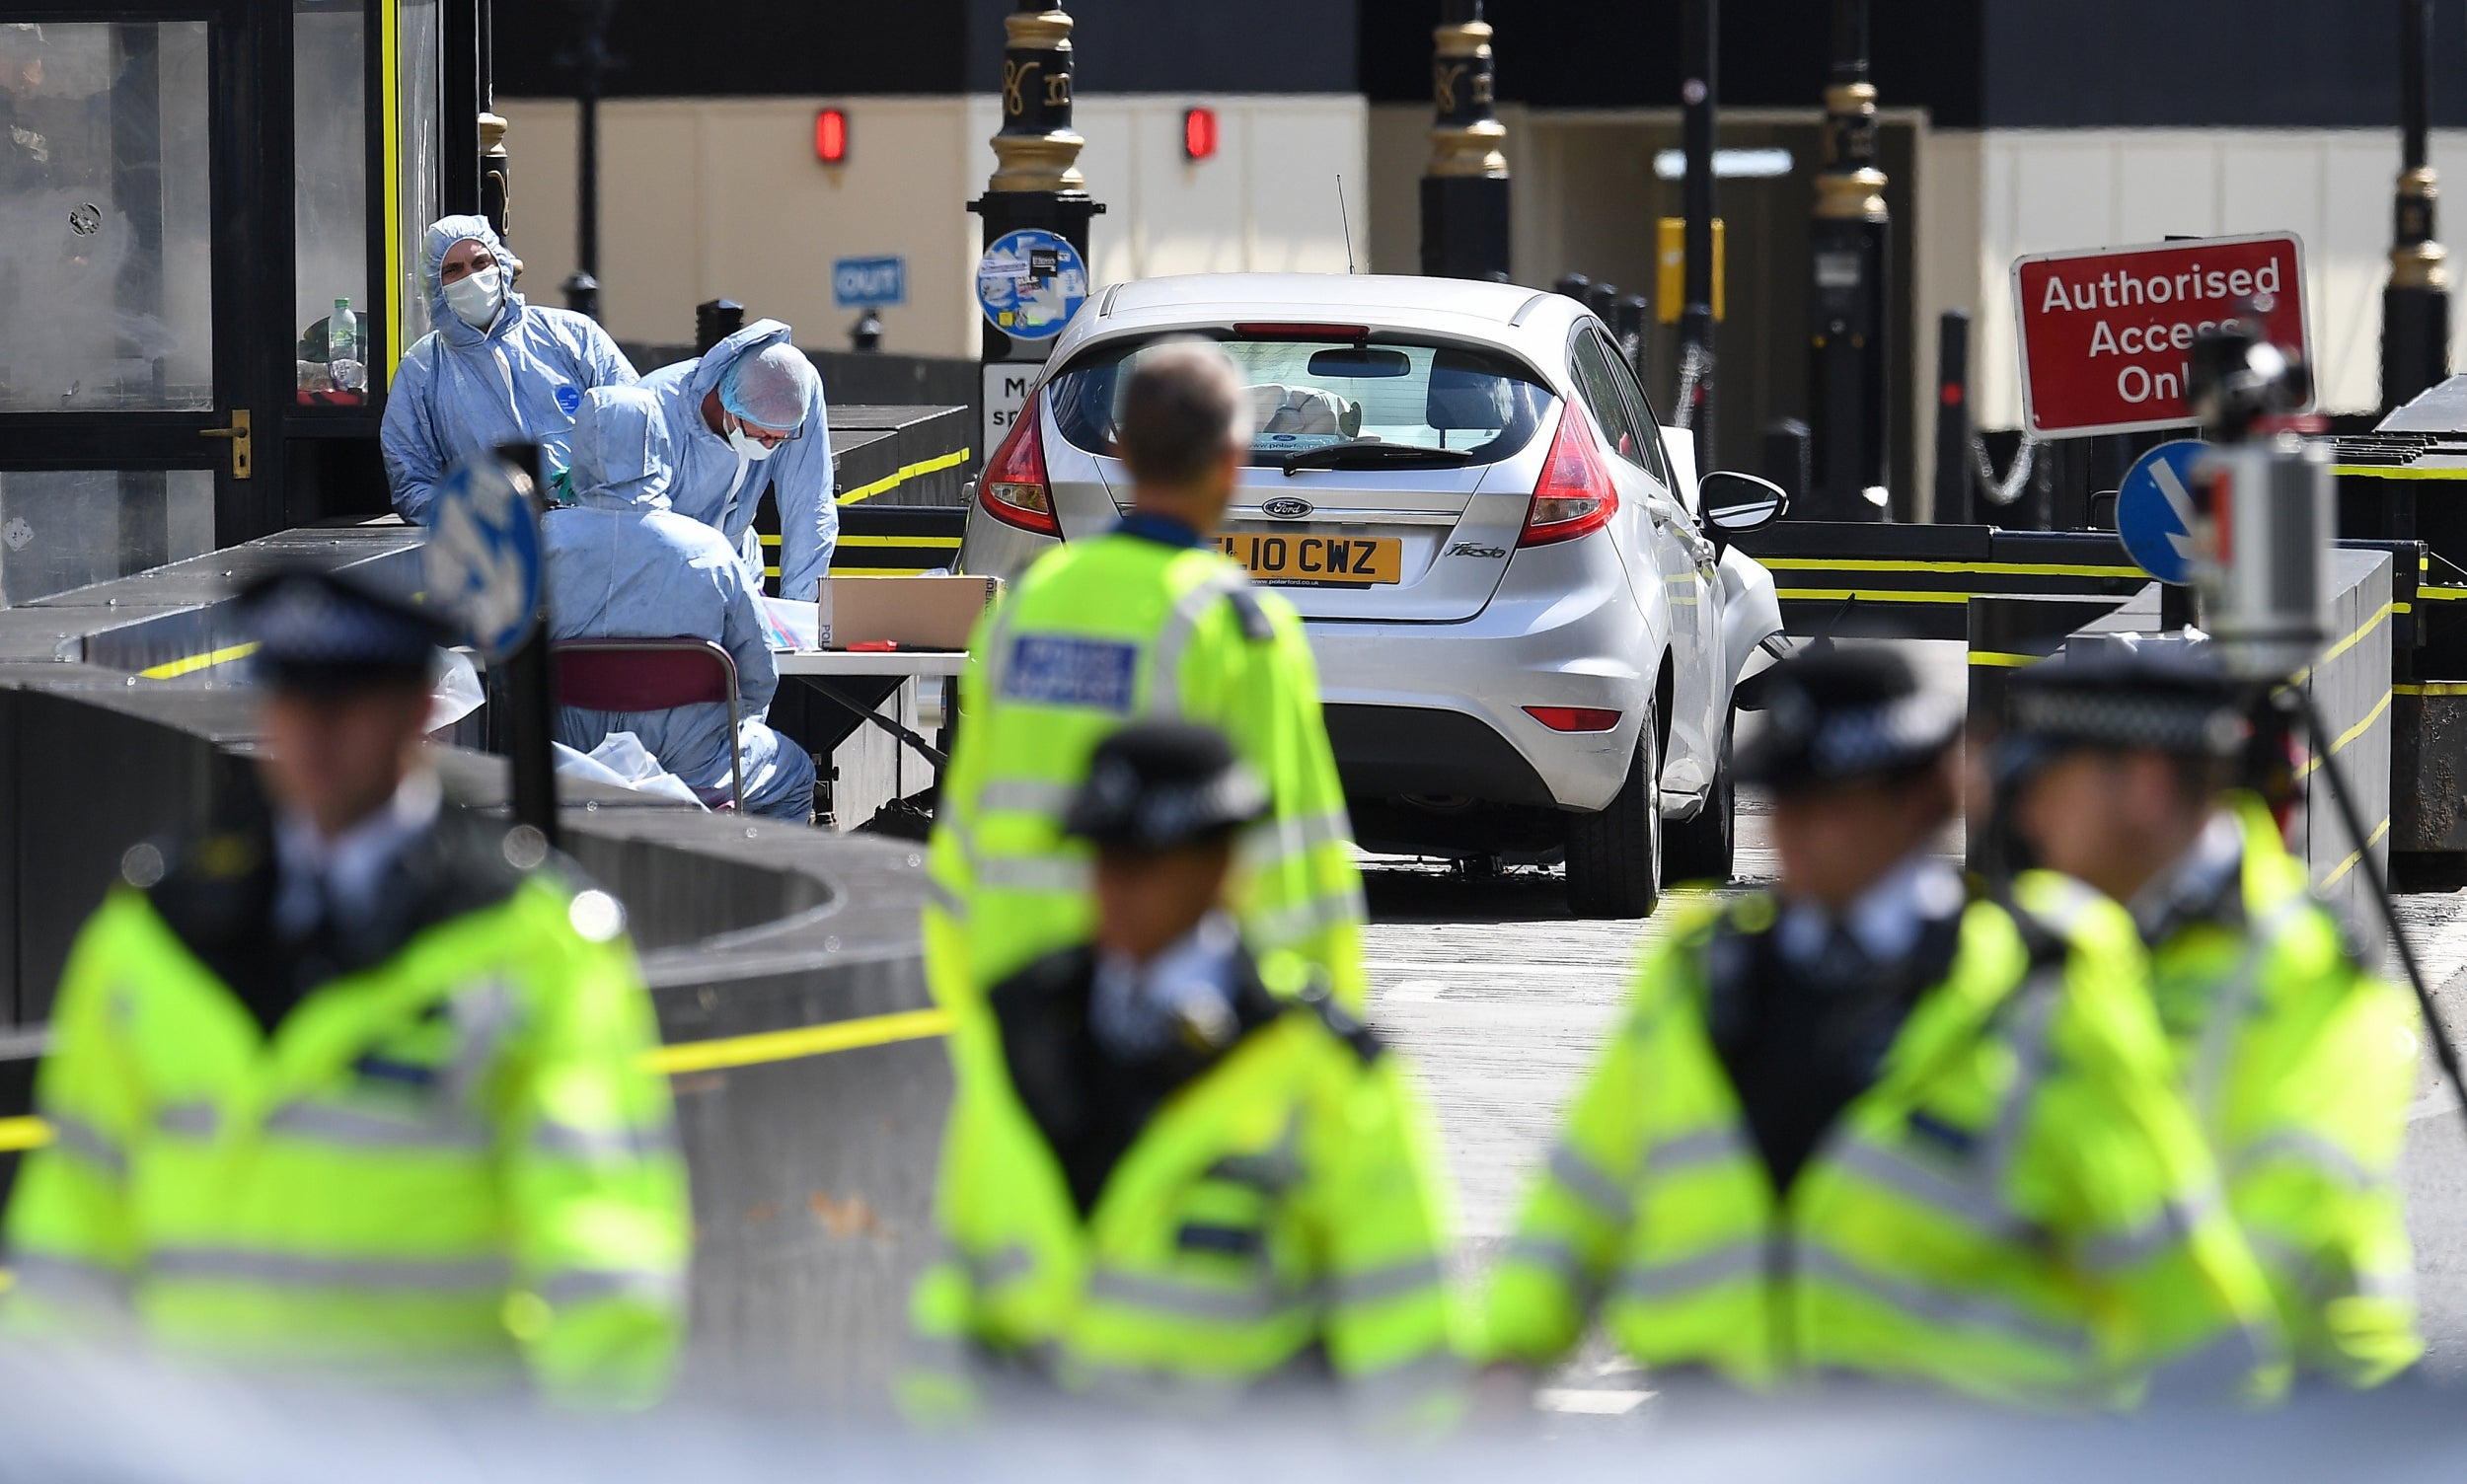 Opinion: Why I'm not surprised most UK terror suspects are white